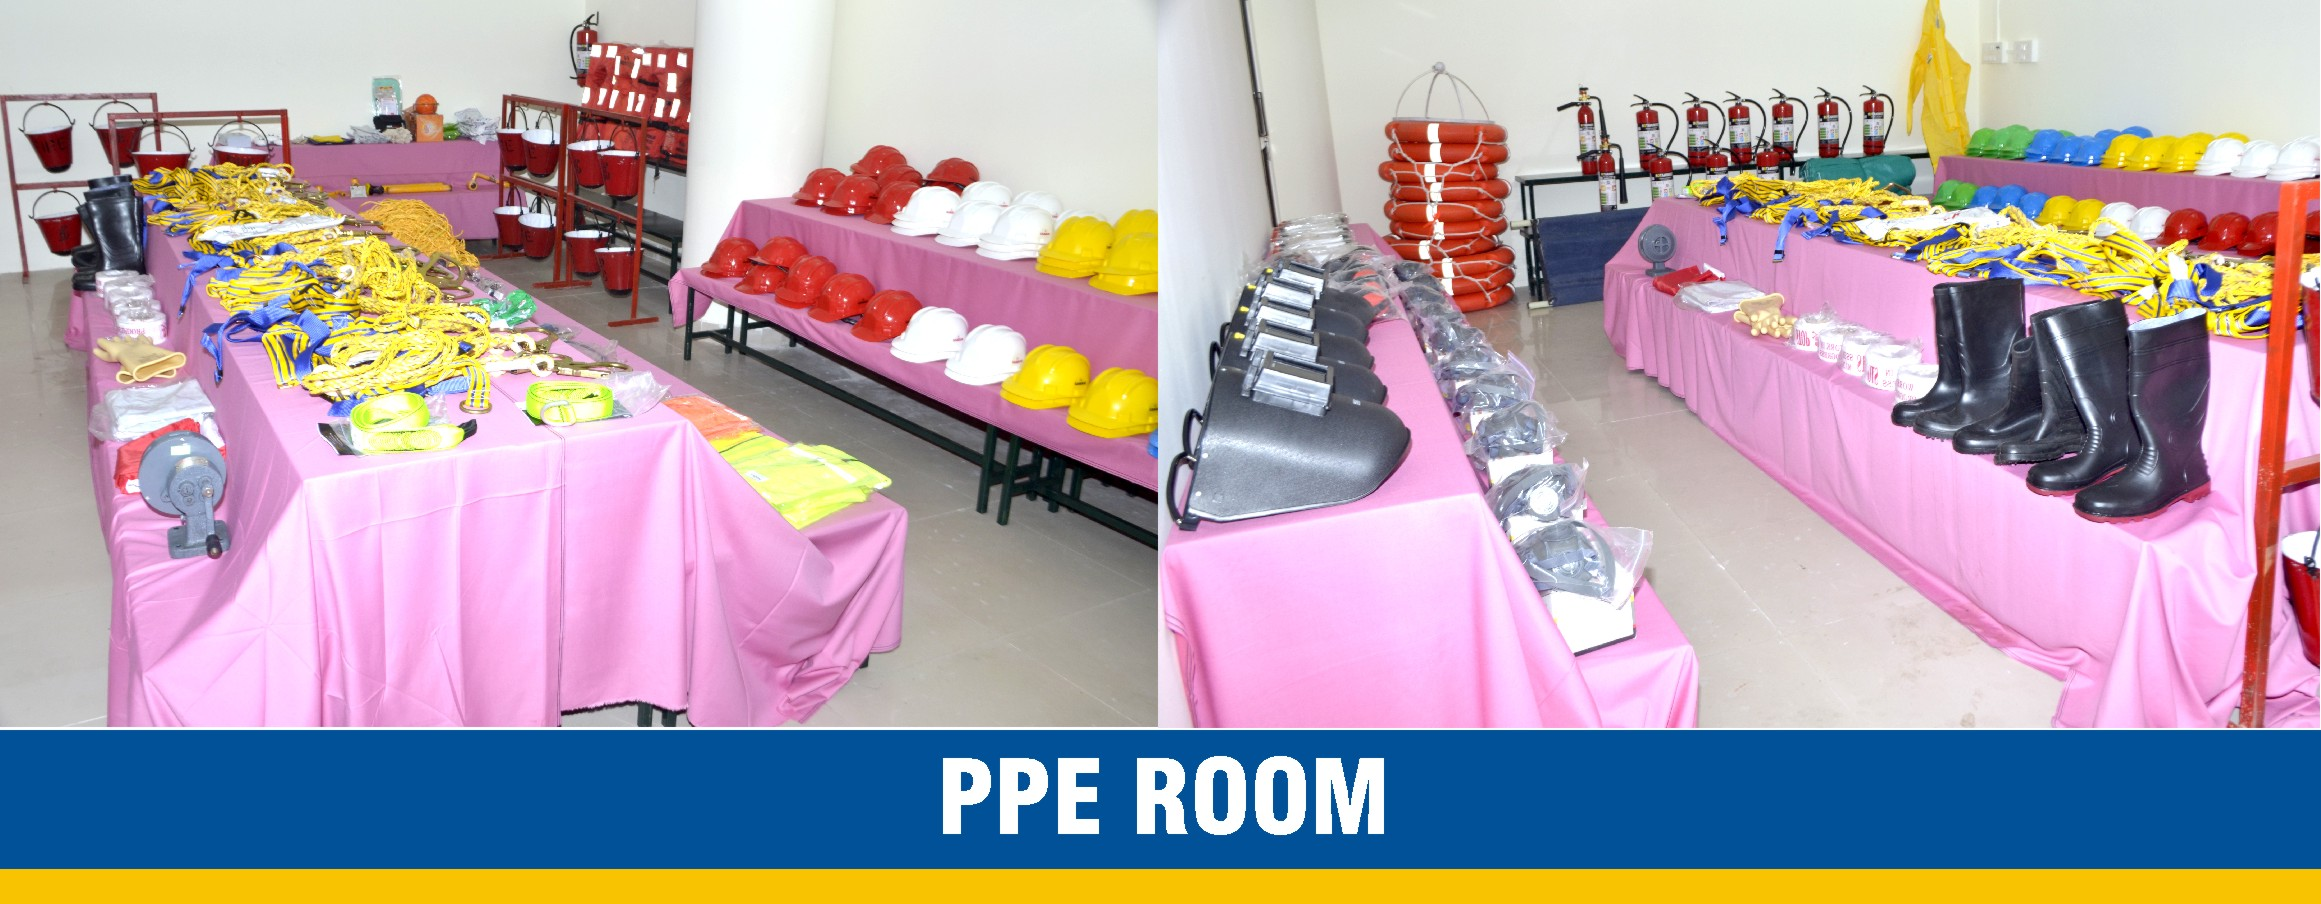 Aset | PPE Room